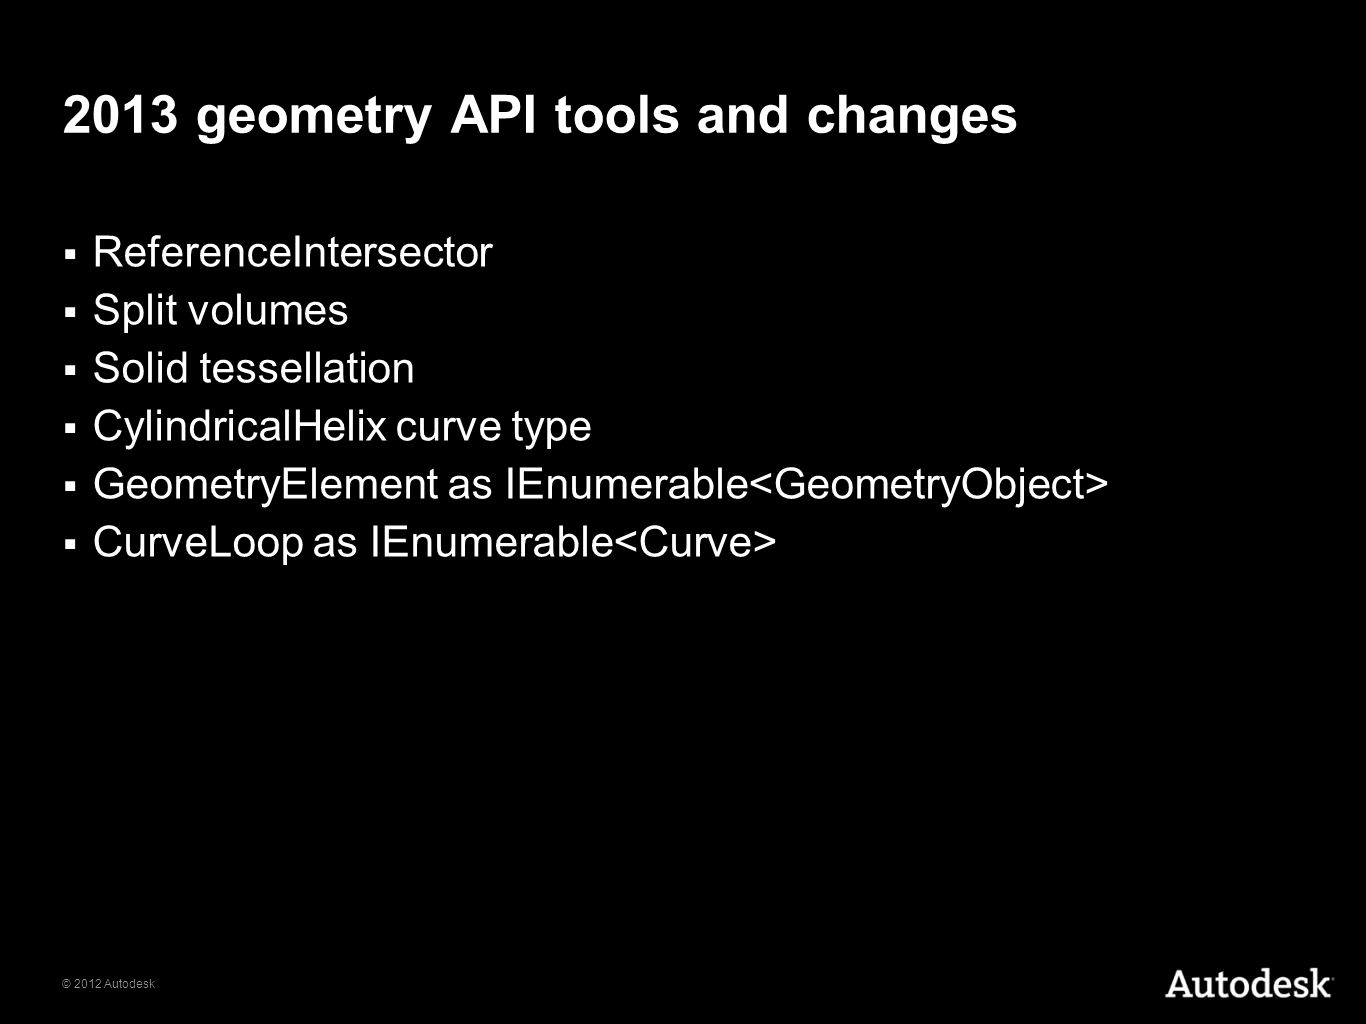 2013 geometry API tools and changes